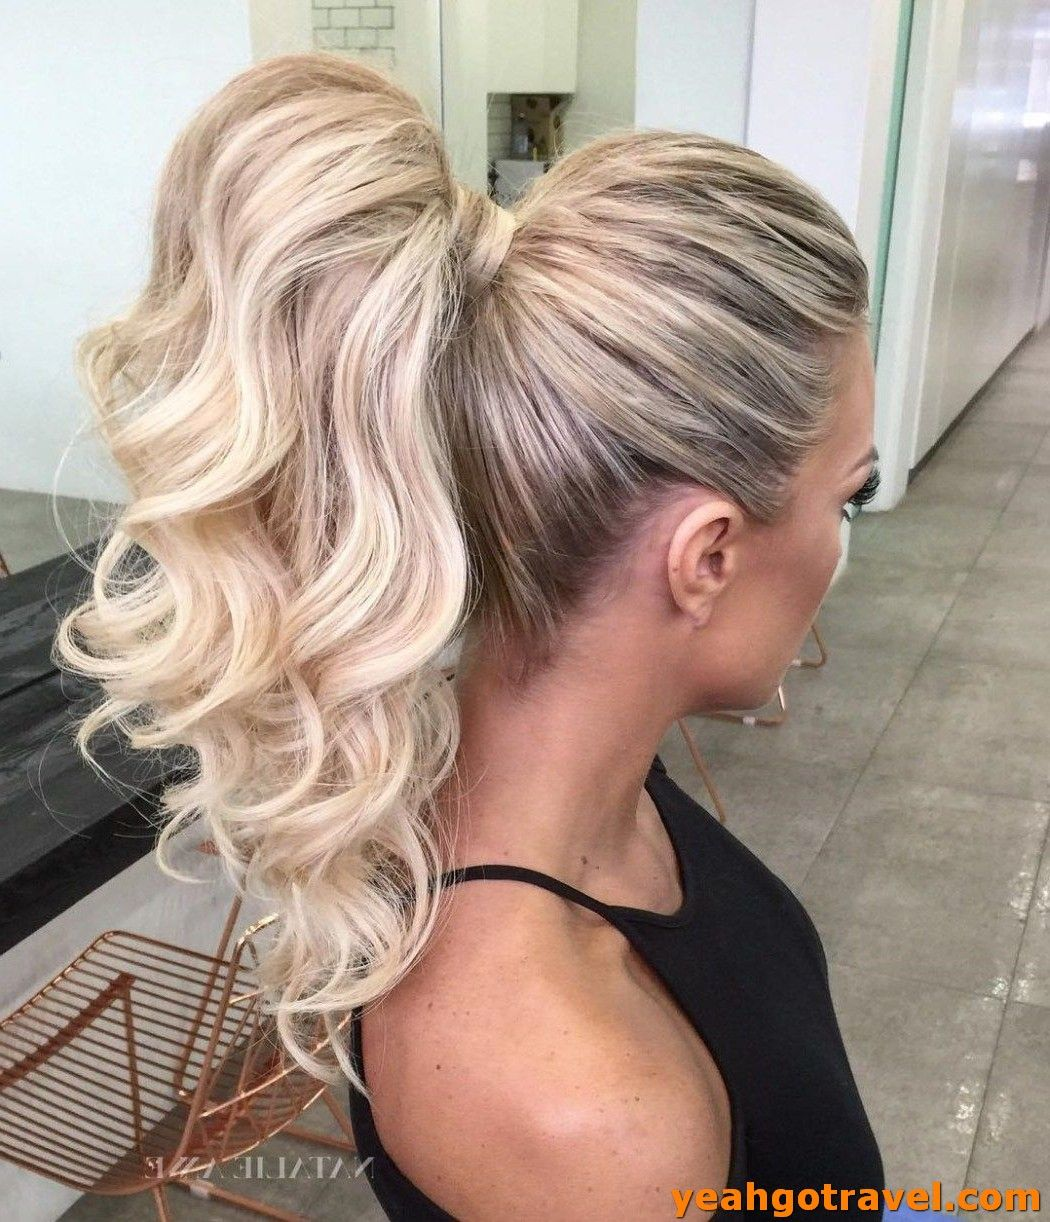 36 Most Popular Curly Blonde Hairstyles - Yeahgotravel.com